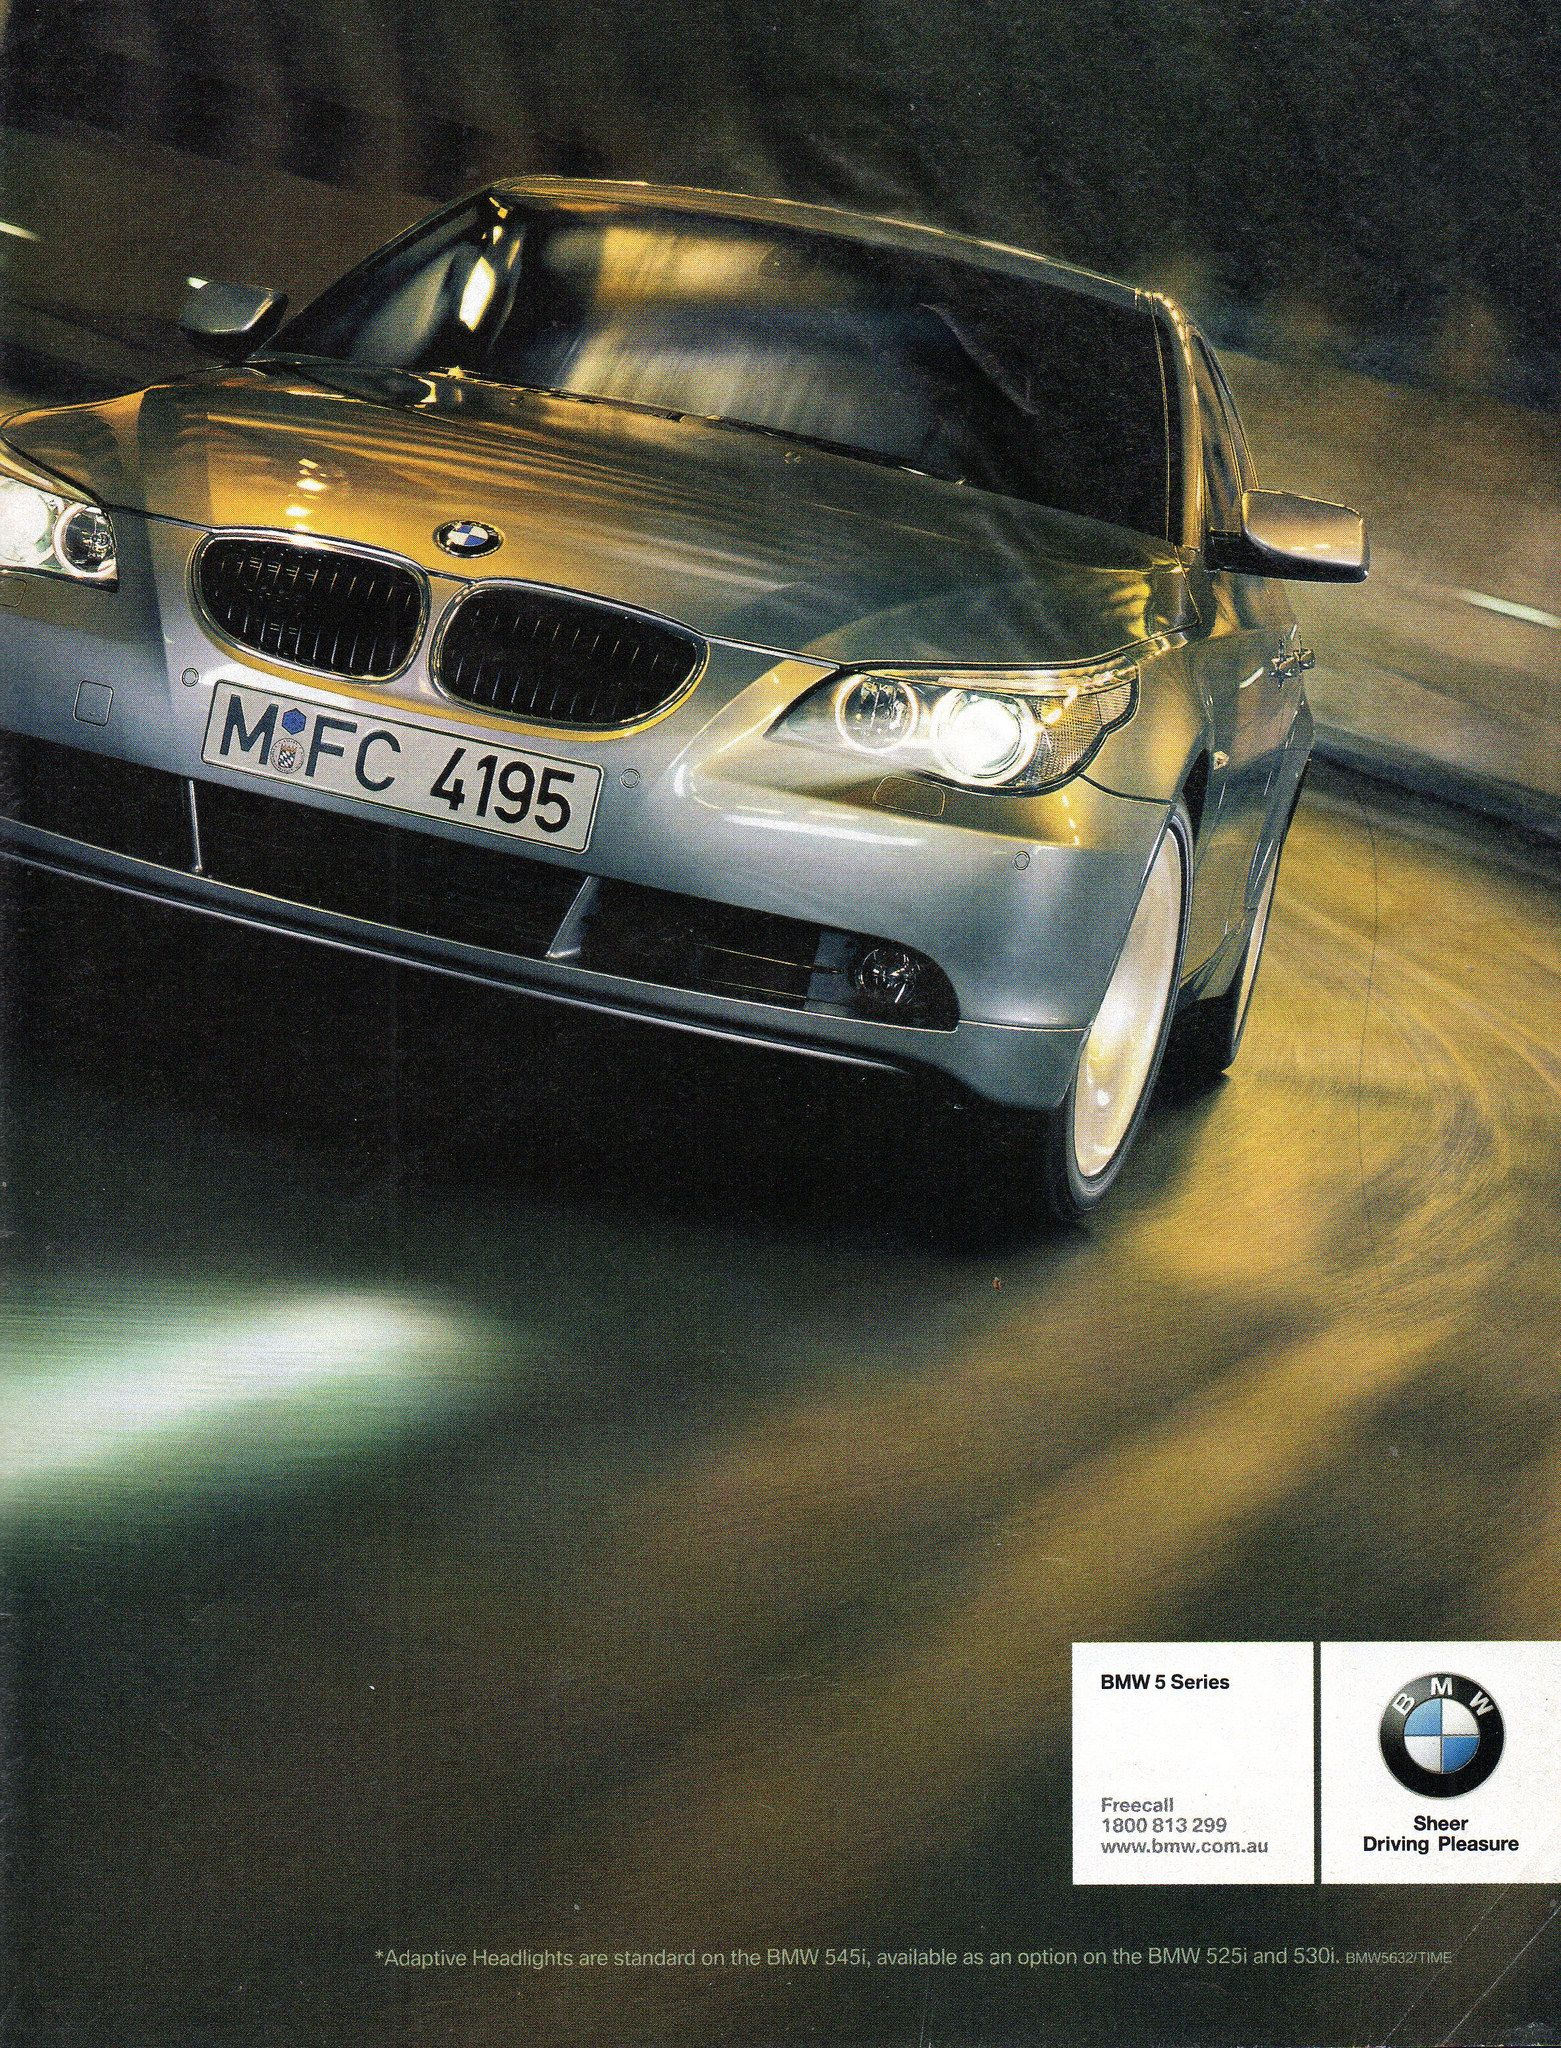 2004 BMW 5 Series Page 2 Aussie Original Magazine